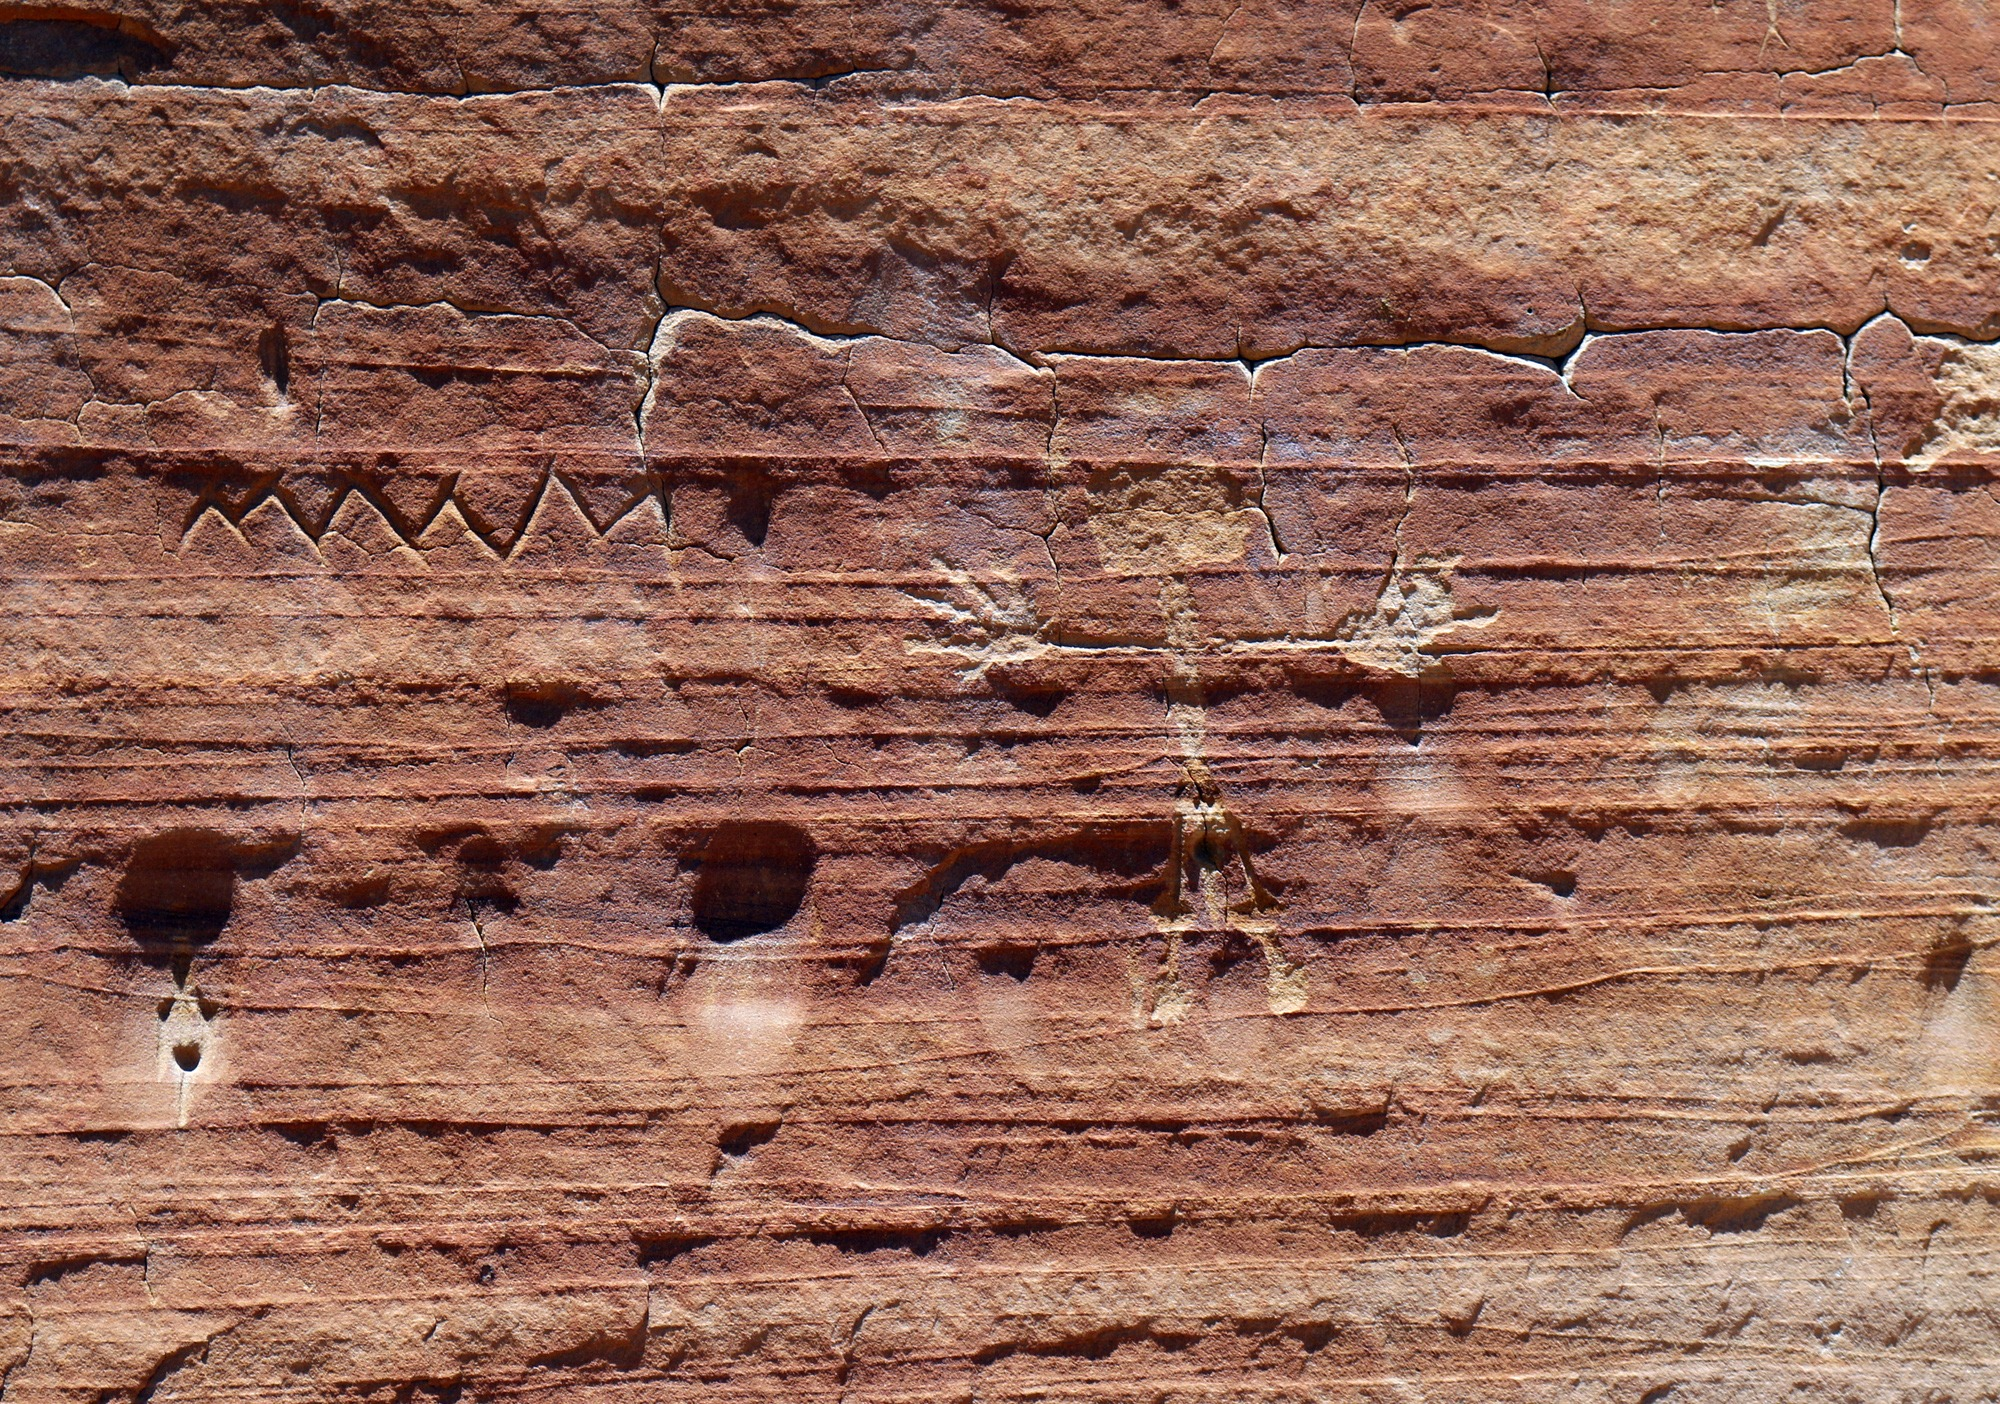 Petroglyphs at White Wave